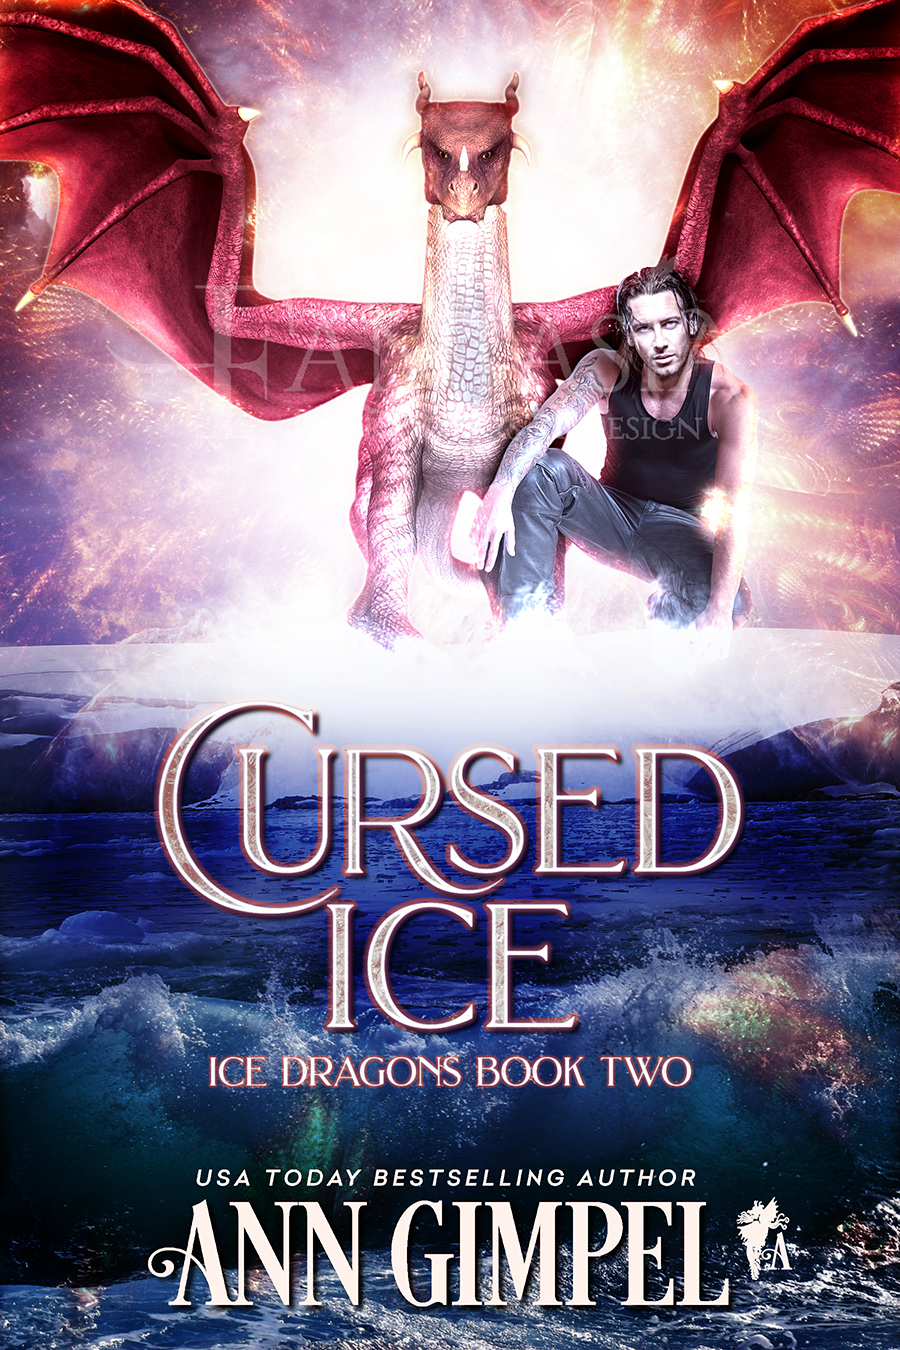 Cursed Ice, Ice Dragons Book Two